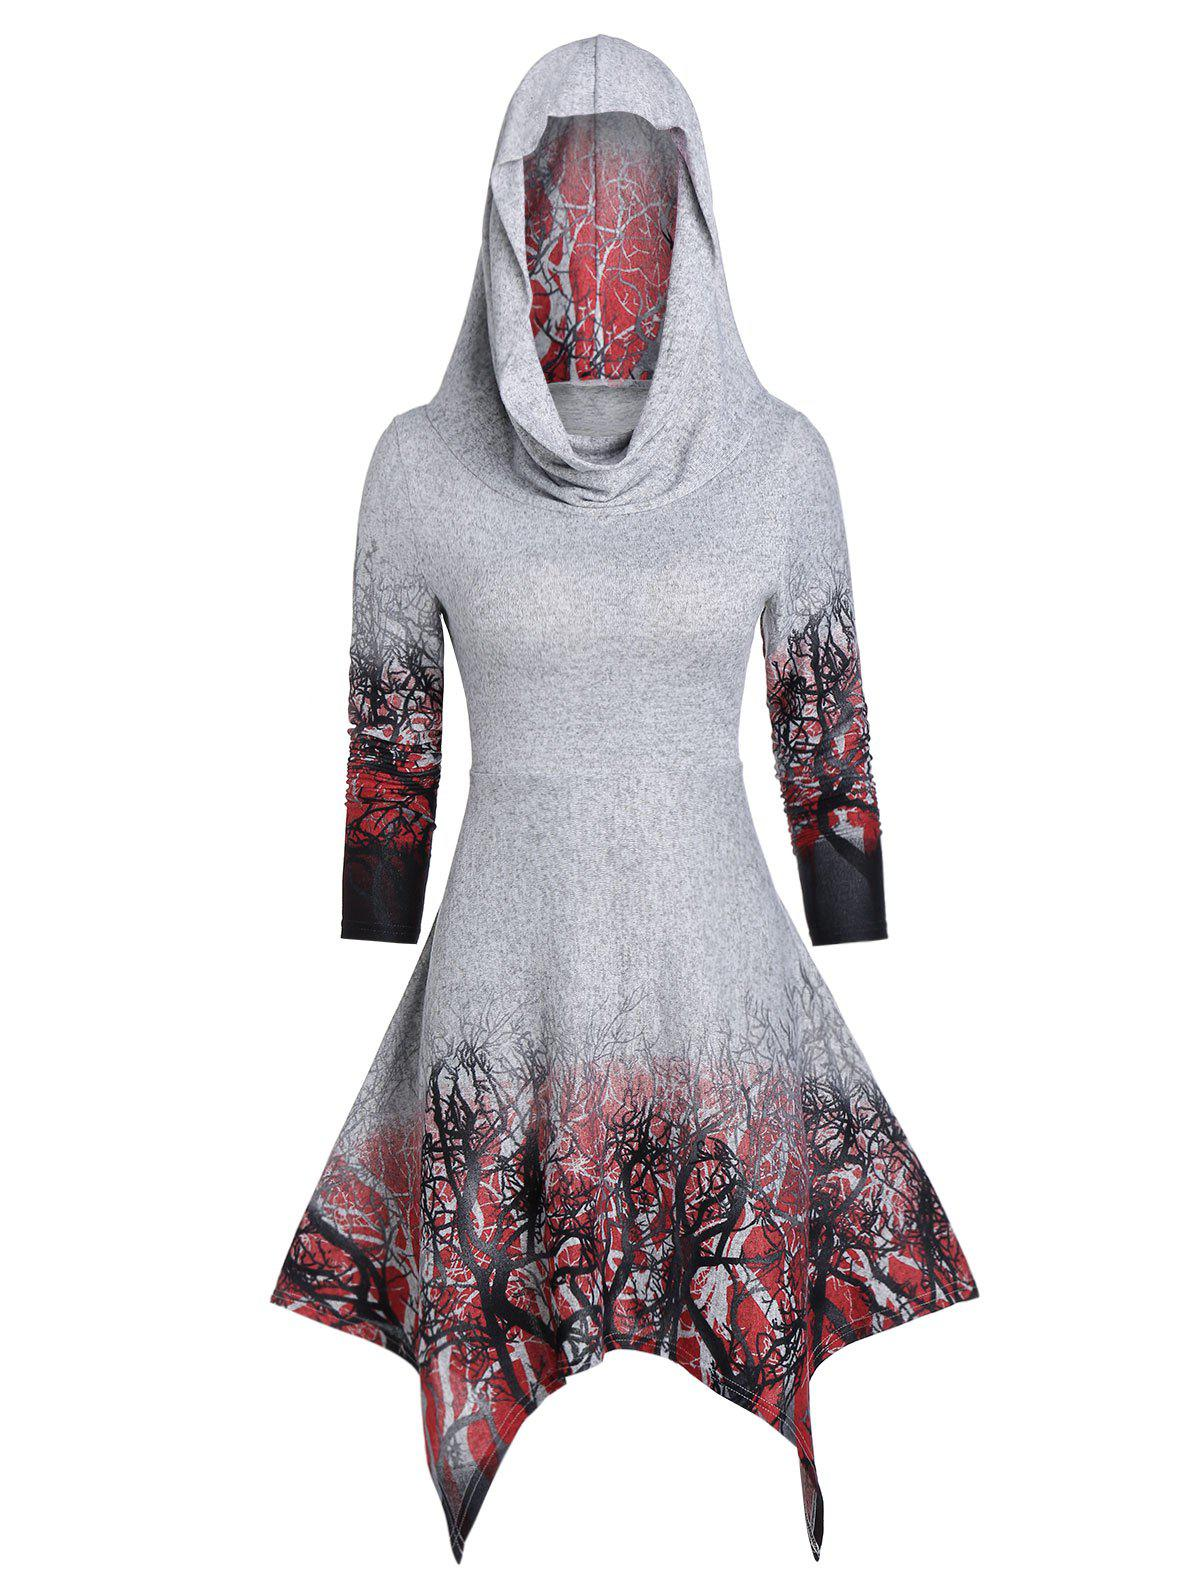 Halloween Convertible Tree Print Handkerchief Dress - GRAY GOOSE L